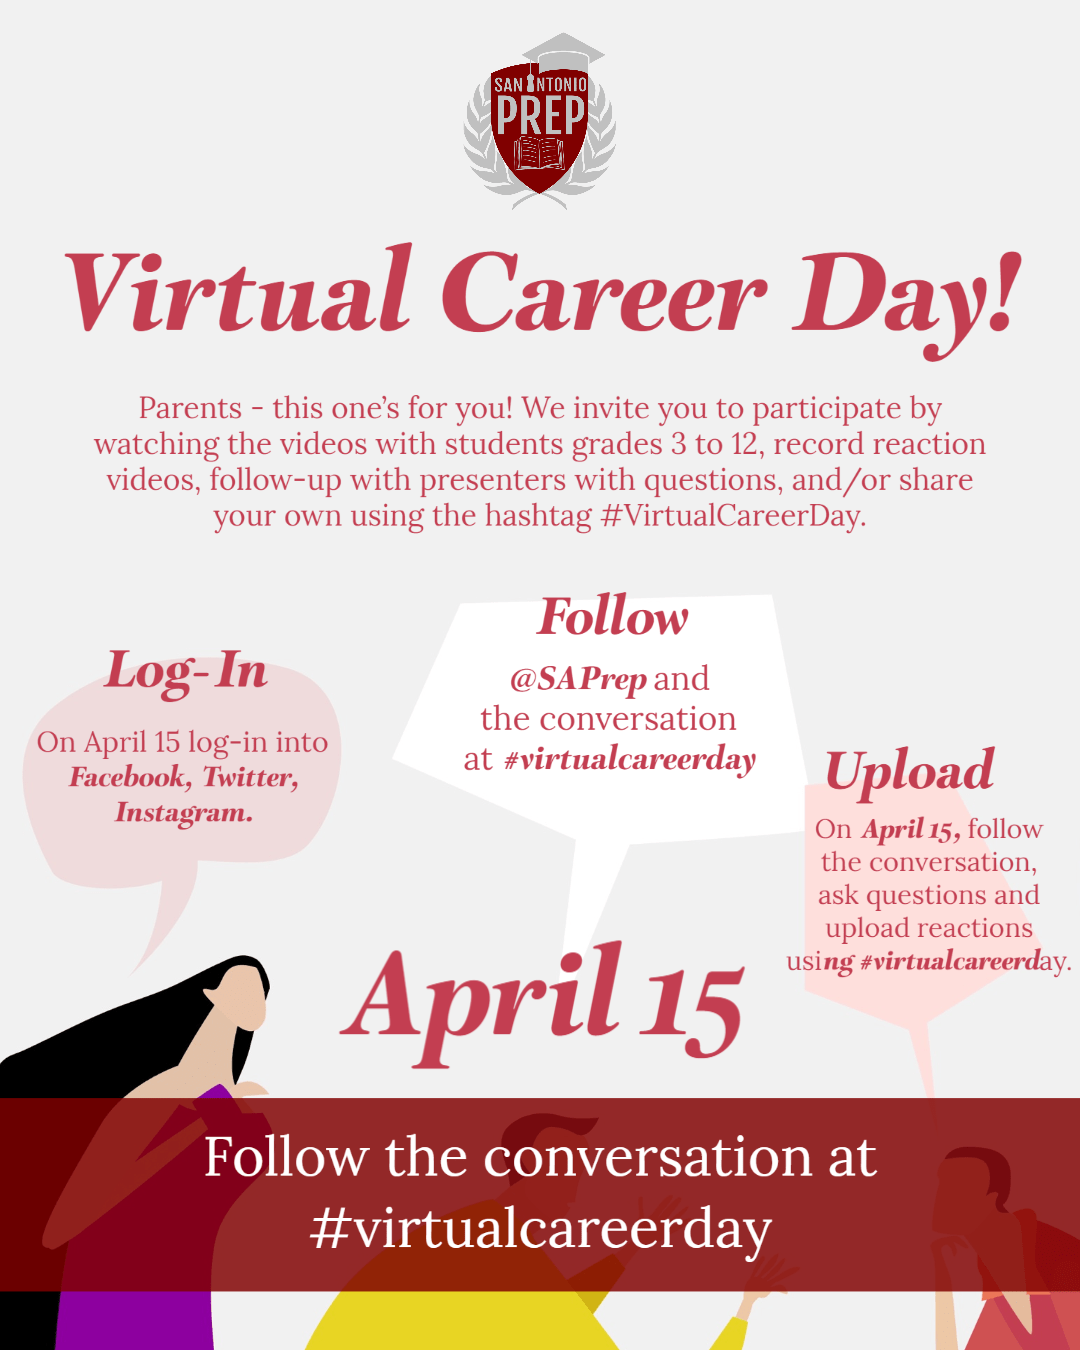 Central Texas charter school invites professionals statewide to join Virtual Career Day!